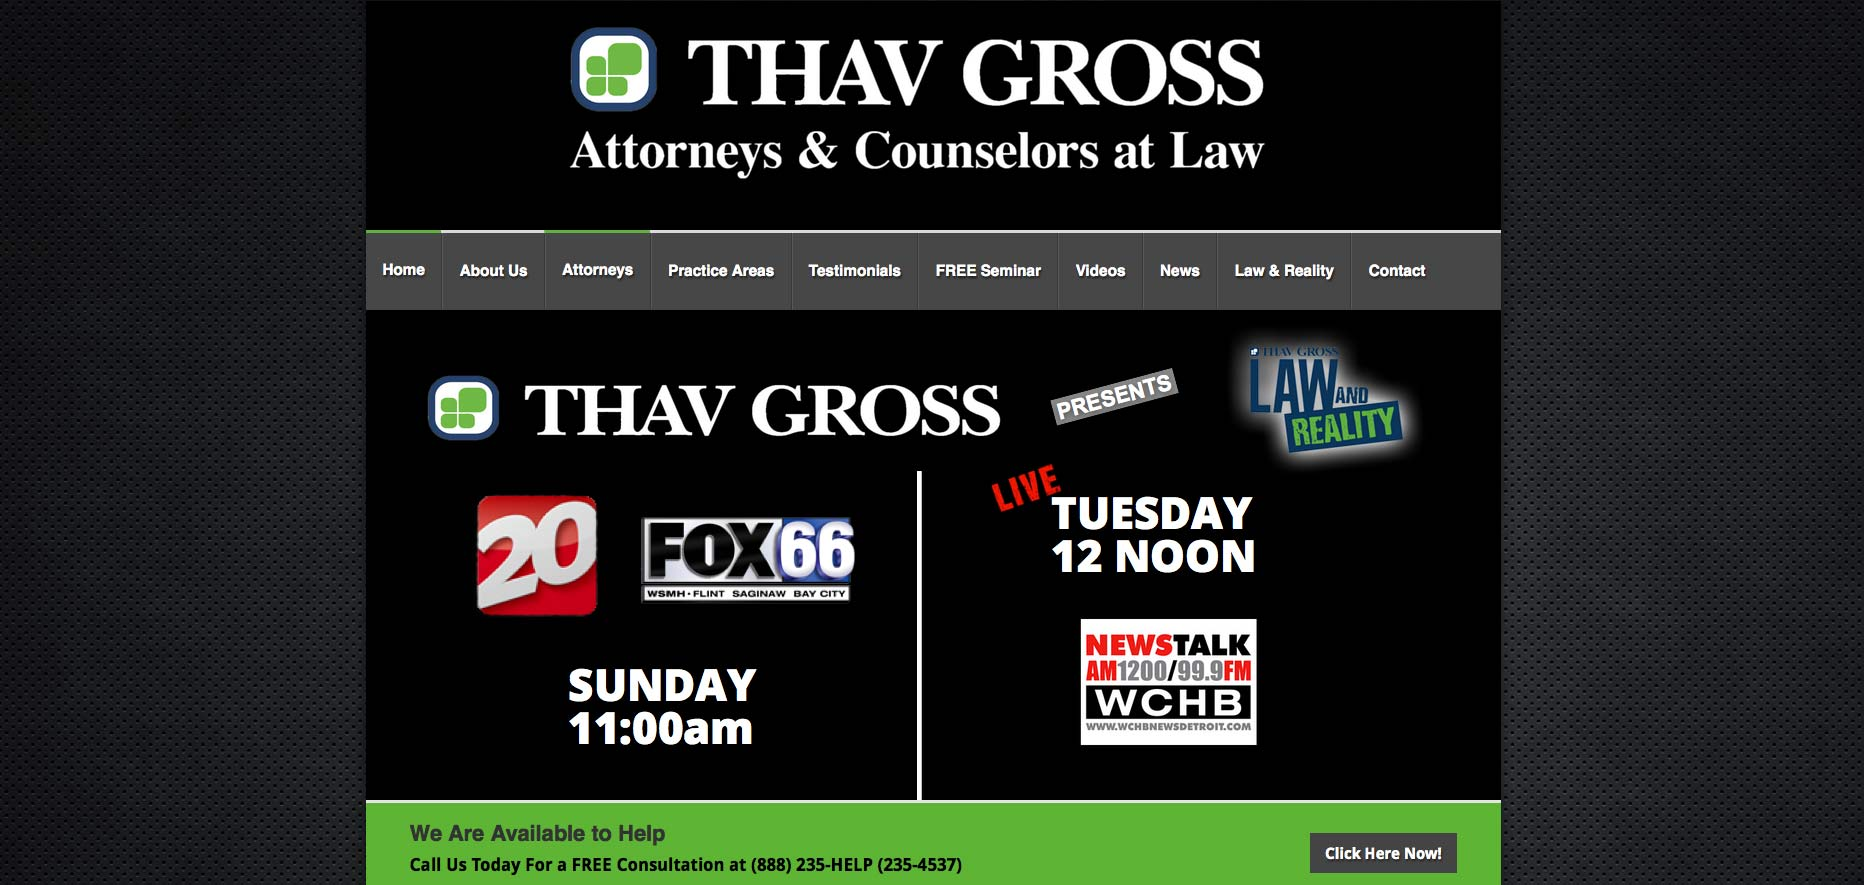 Thav Gross Attorneys